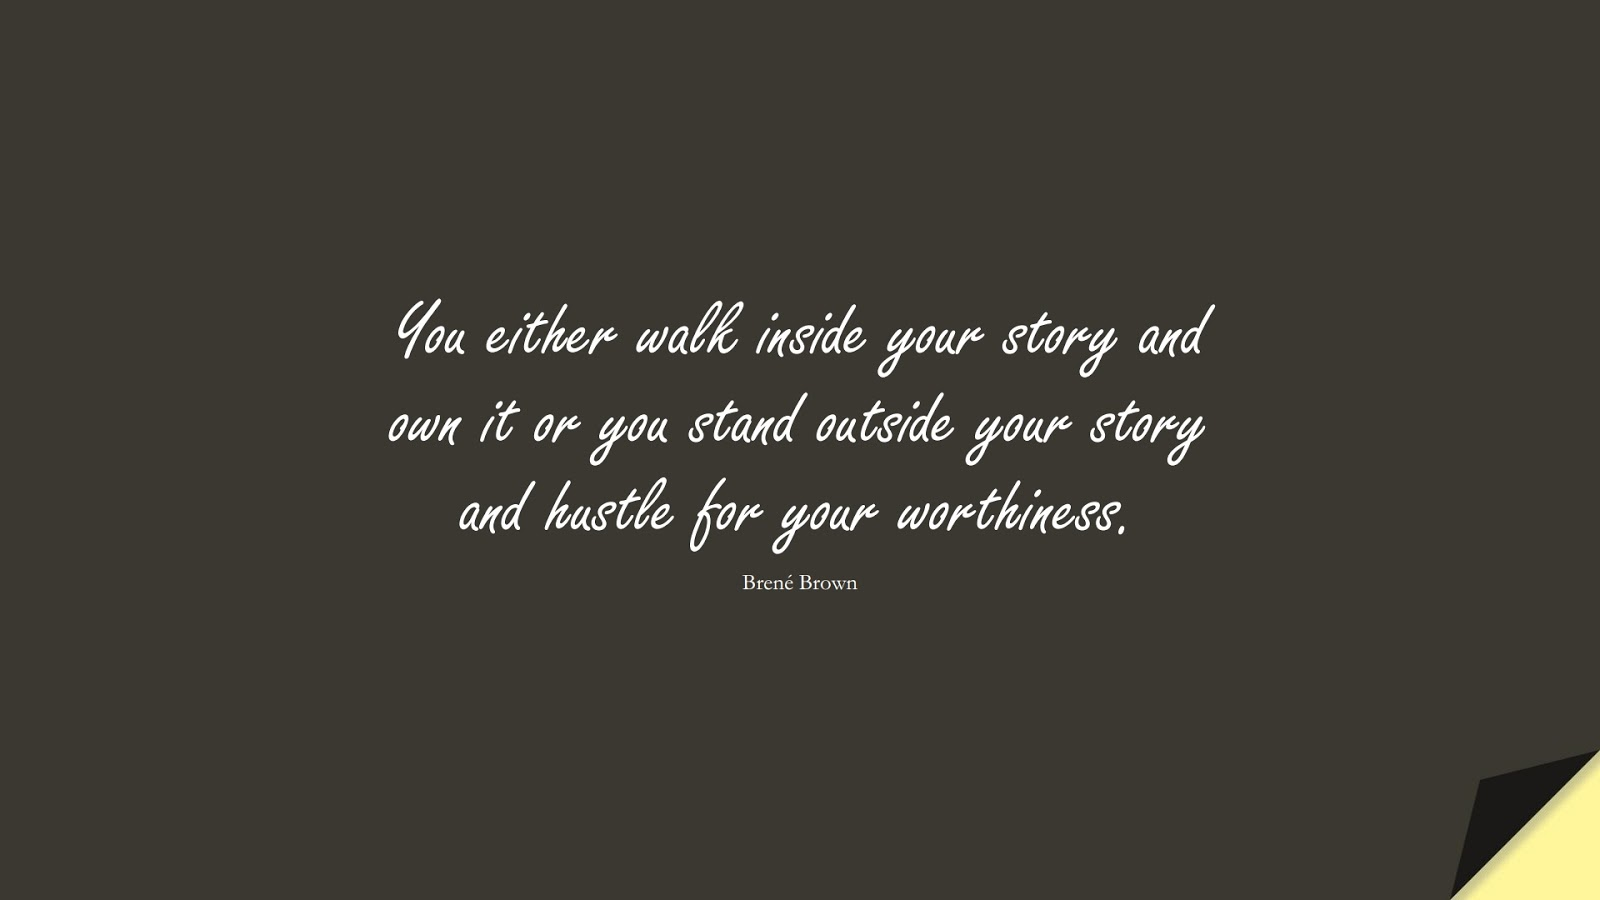 You either walk inside your story and own it or you stand outside your story and hustle for your worthiness. (Brené Brown);  #SelfEsteemQuotes